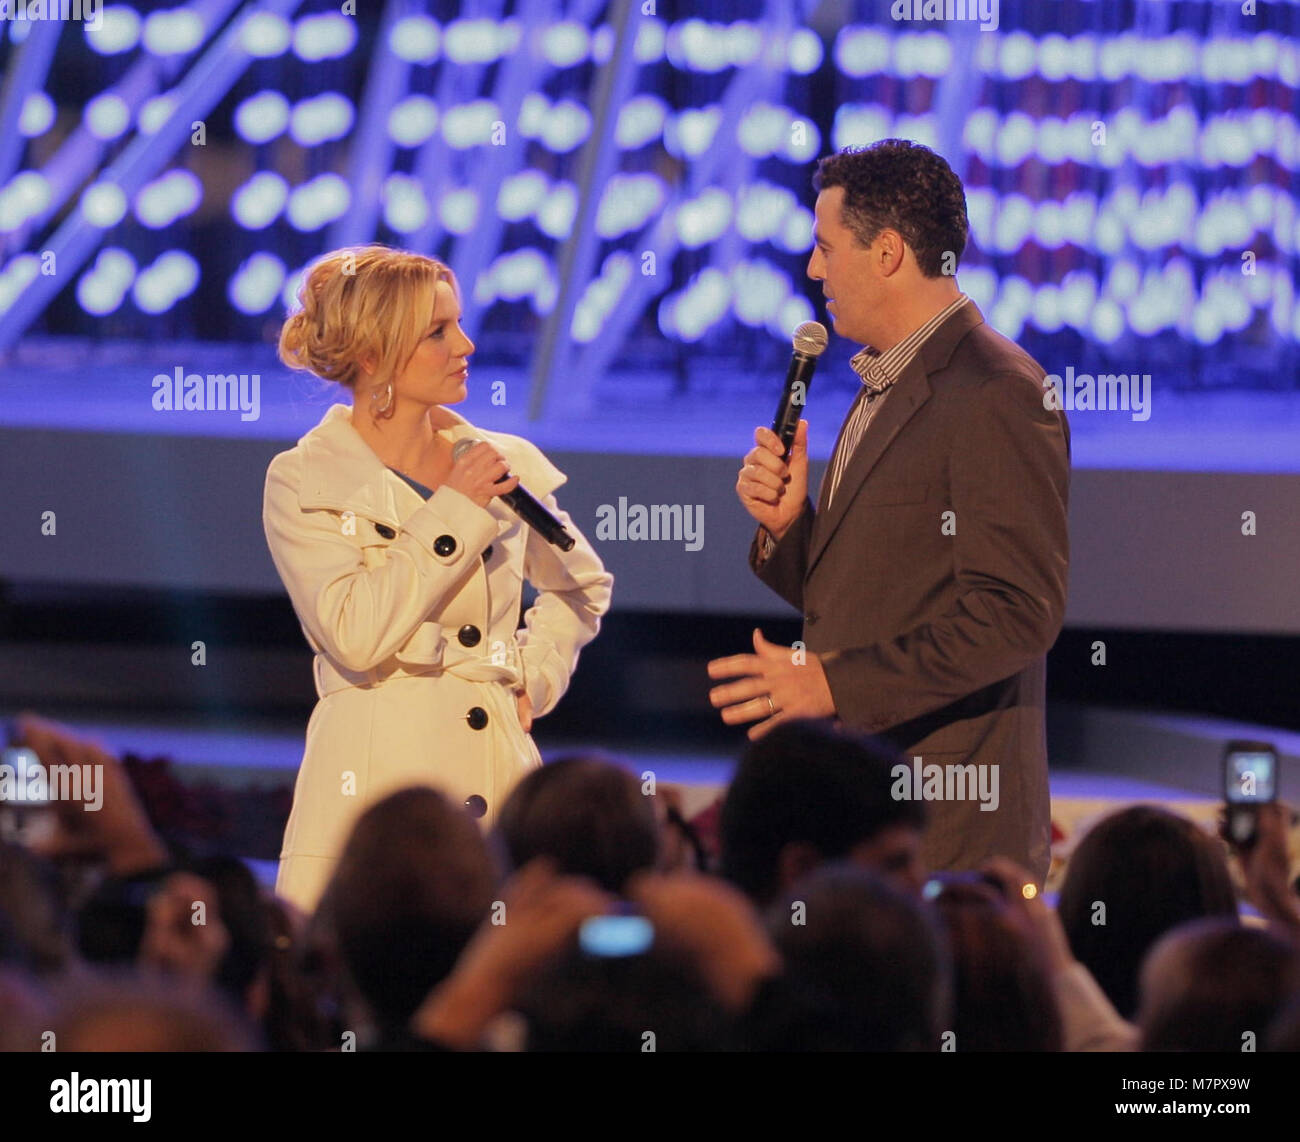 LOS ANGELES, CA - DECEMBER 04: Singer Britney Spears lights the tree on stage at the 'Light of the Angels' Holiday Stock Photo